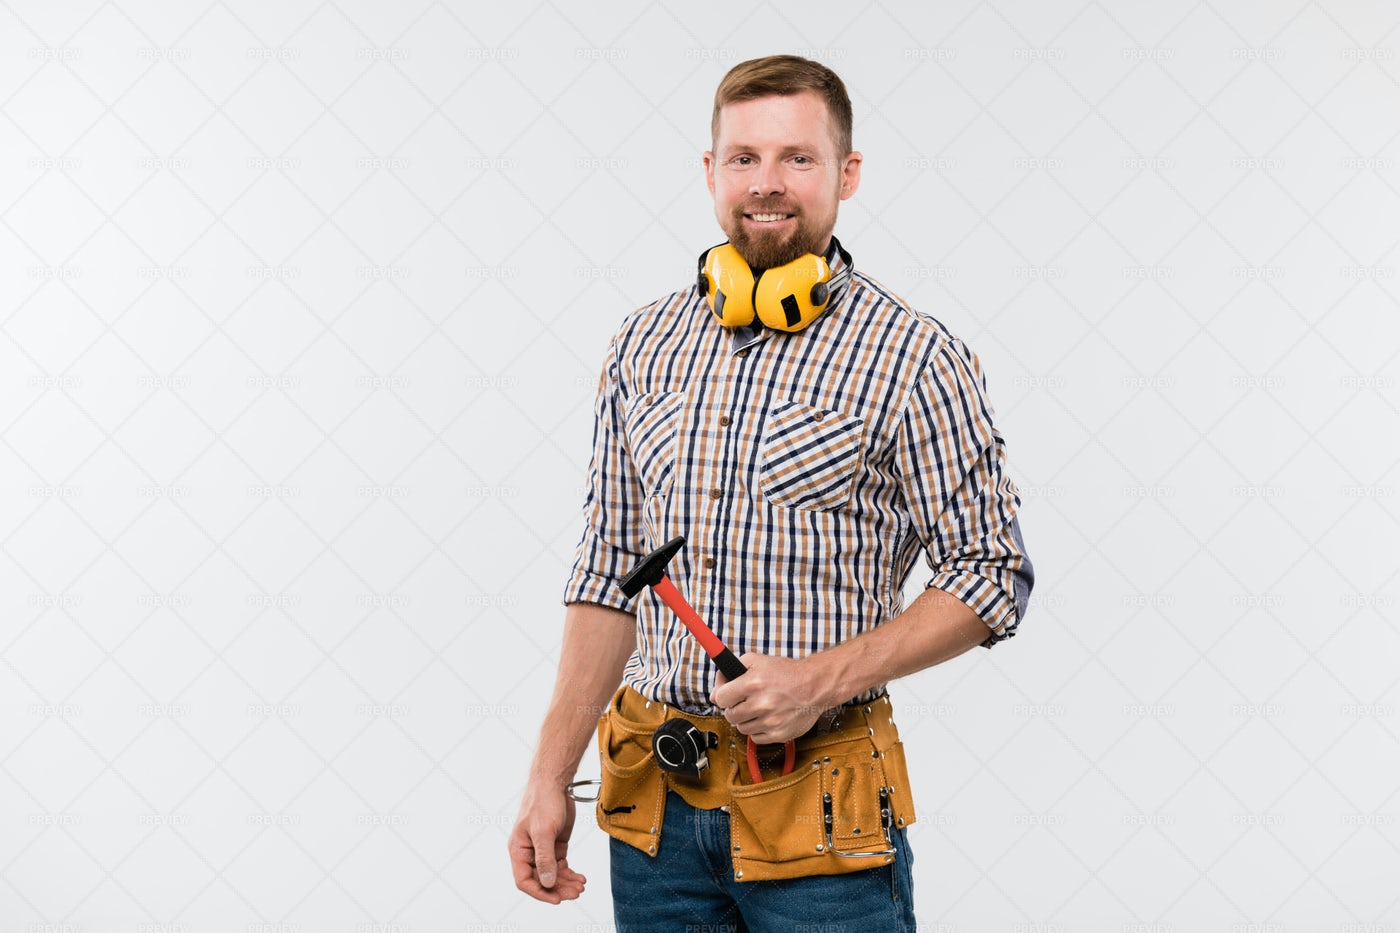 Bearded Smiling Technician With...: Stock Photos